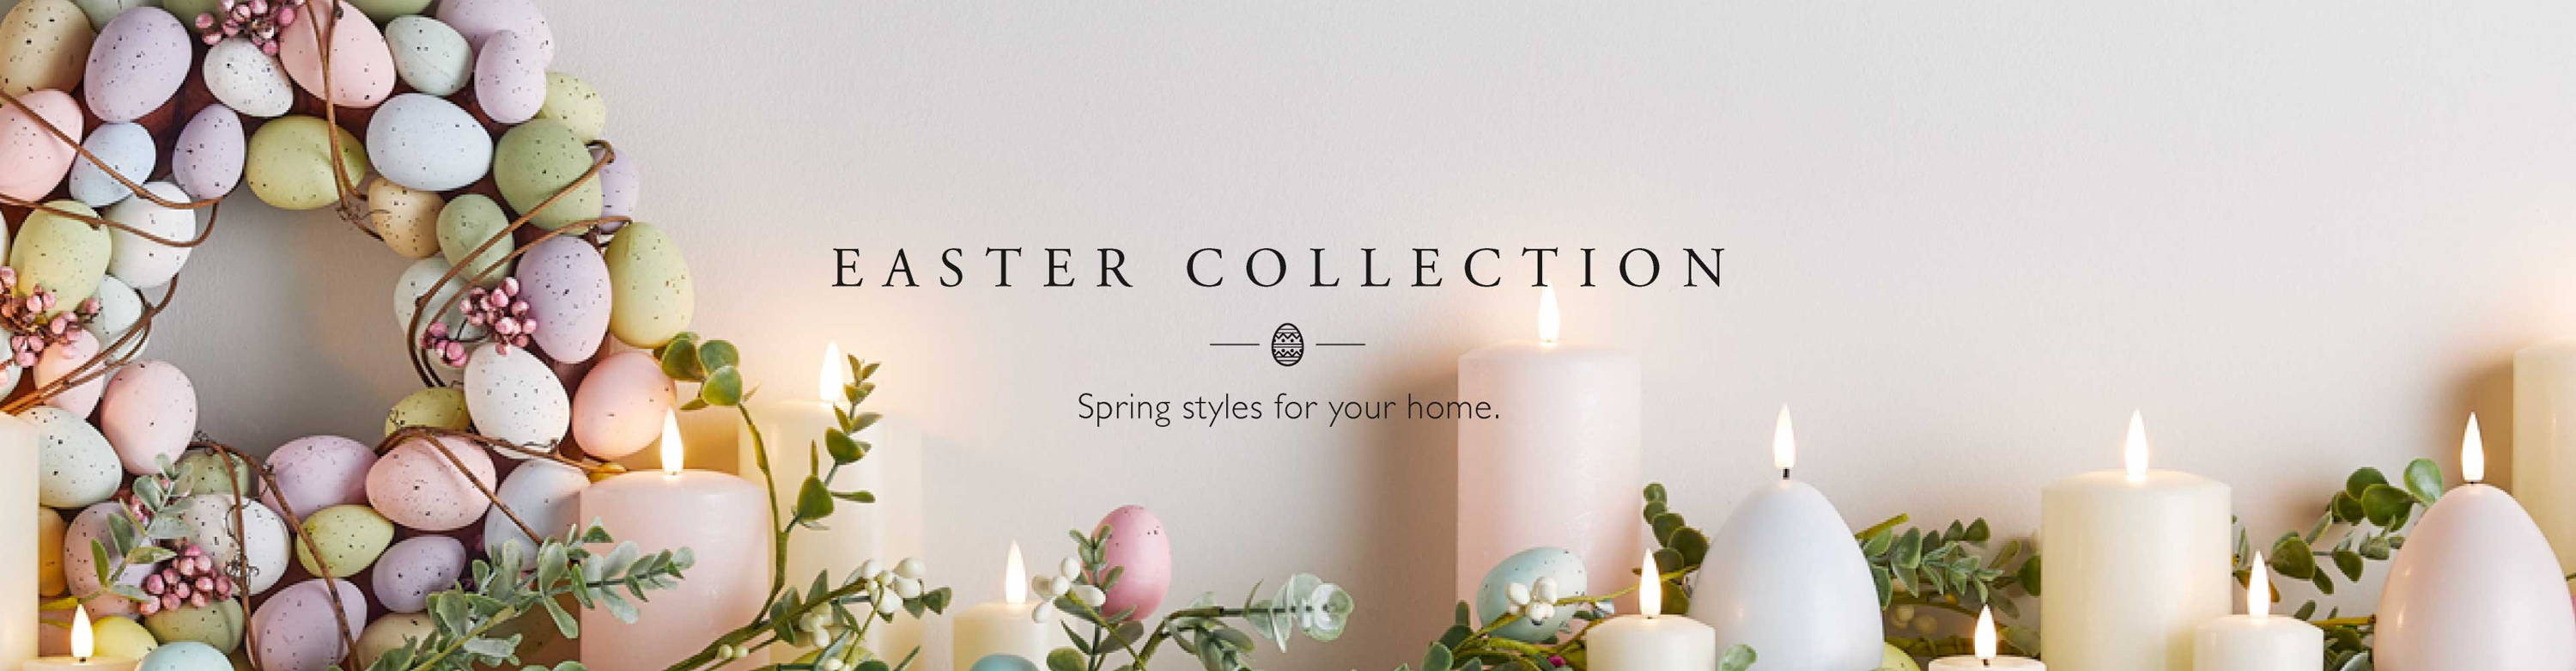 Easter mantel with pastel TruGlow candles and Easter garland and wreath